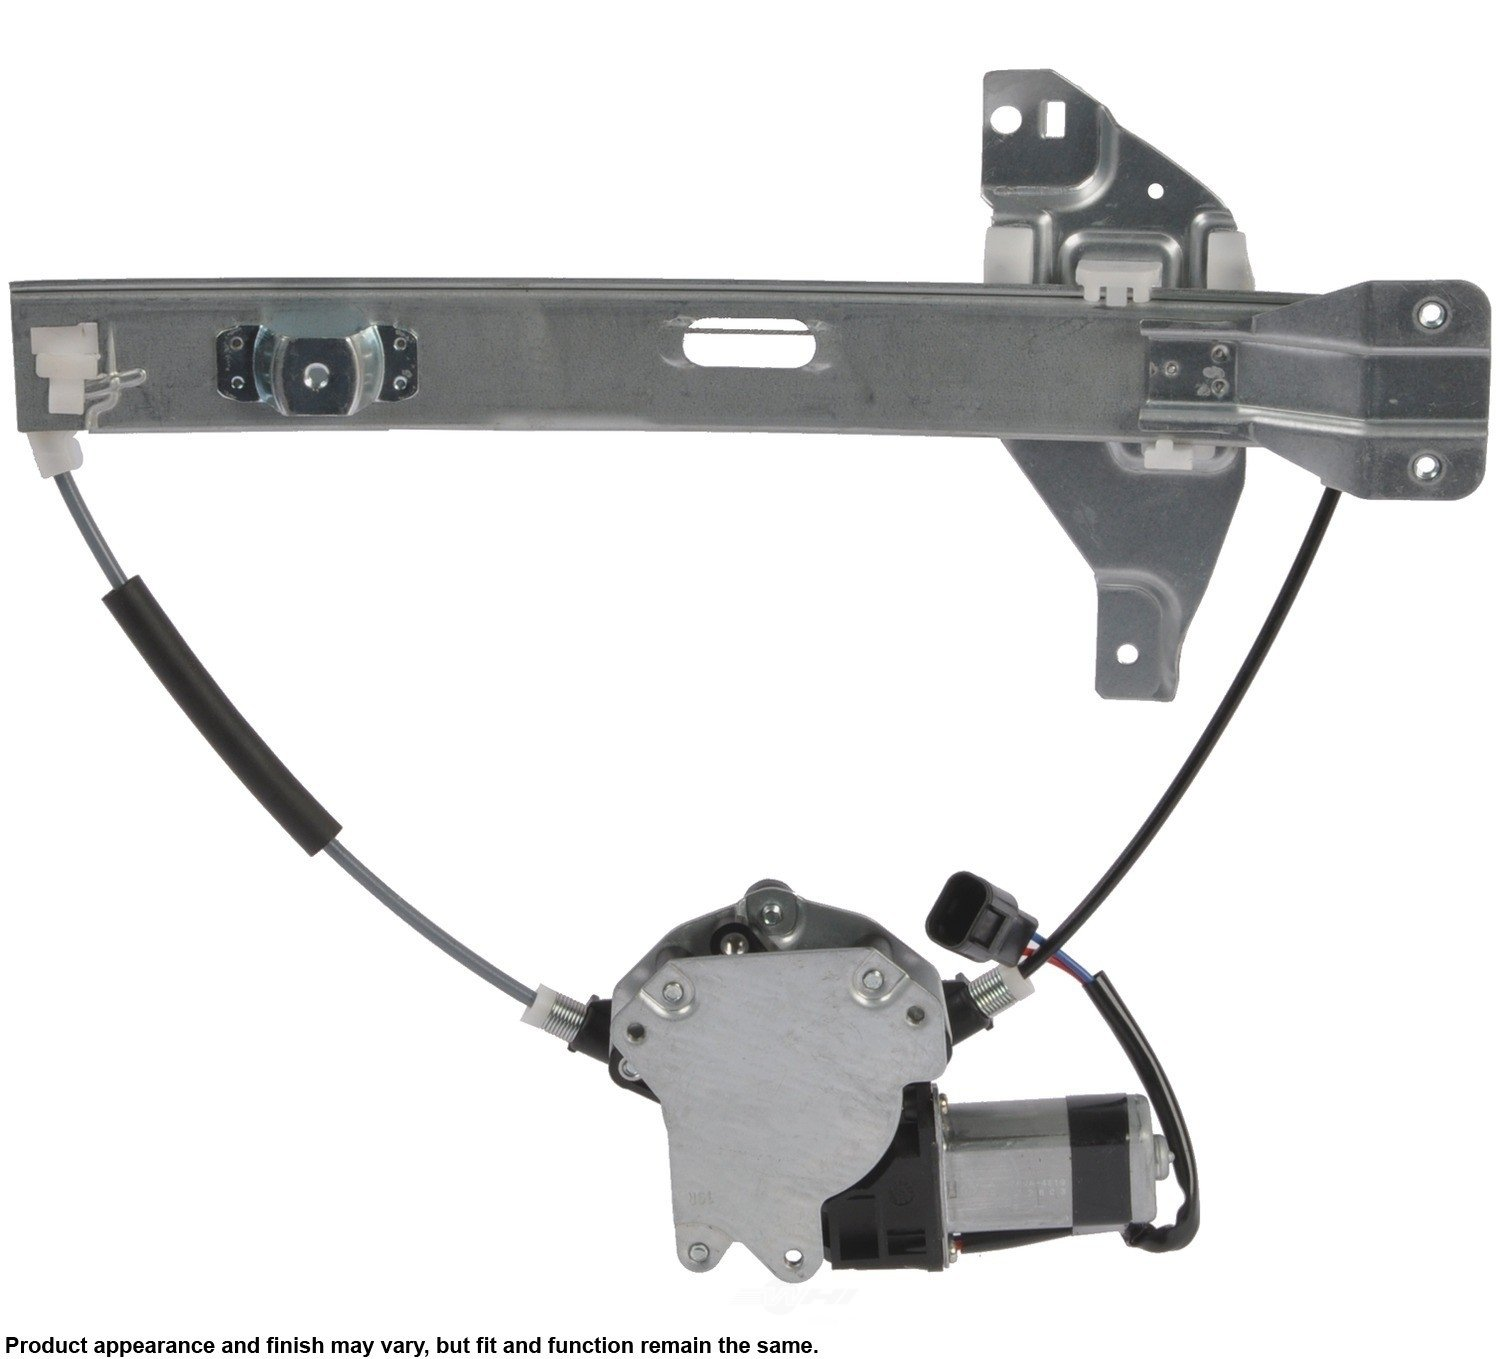 CARDONE NEW - Power Window Motor And Regulator Assembly (Rear Right) - A1S 82-1031BR